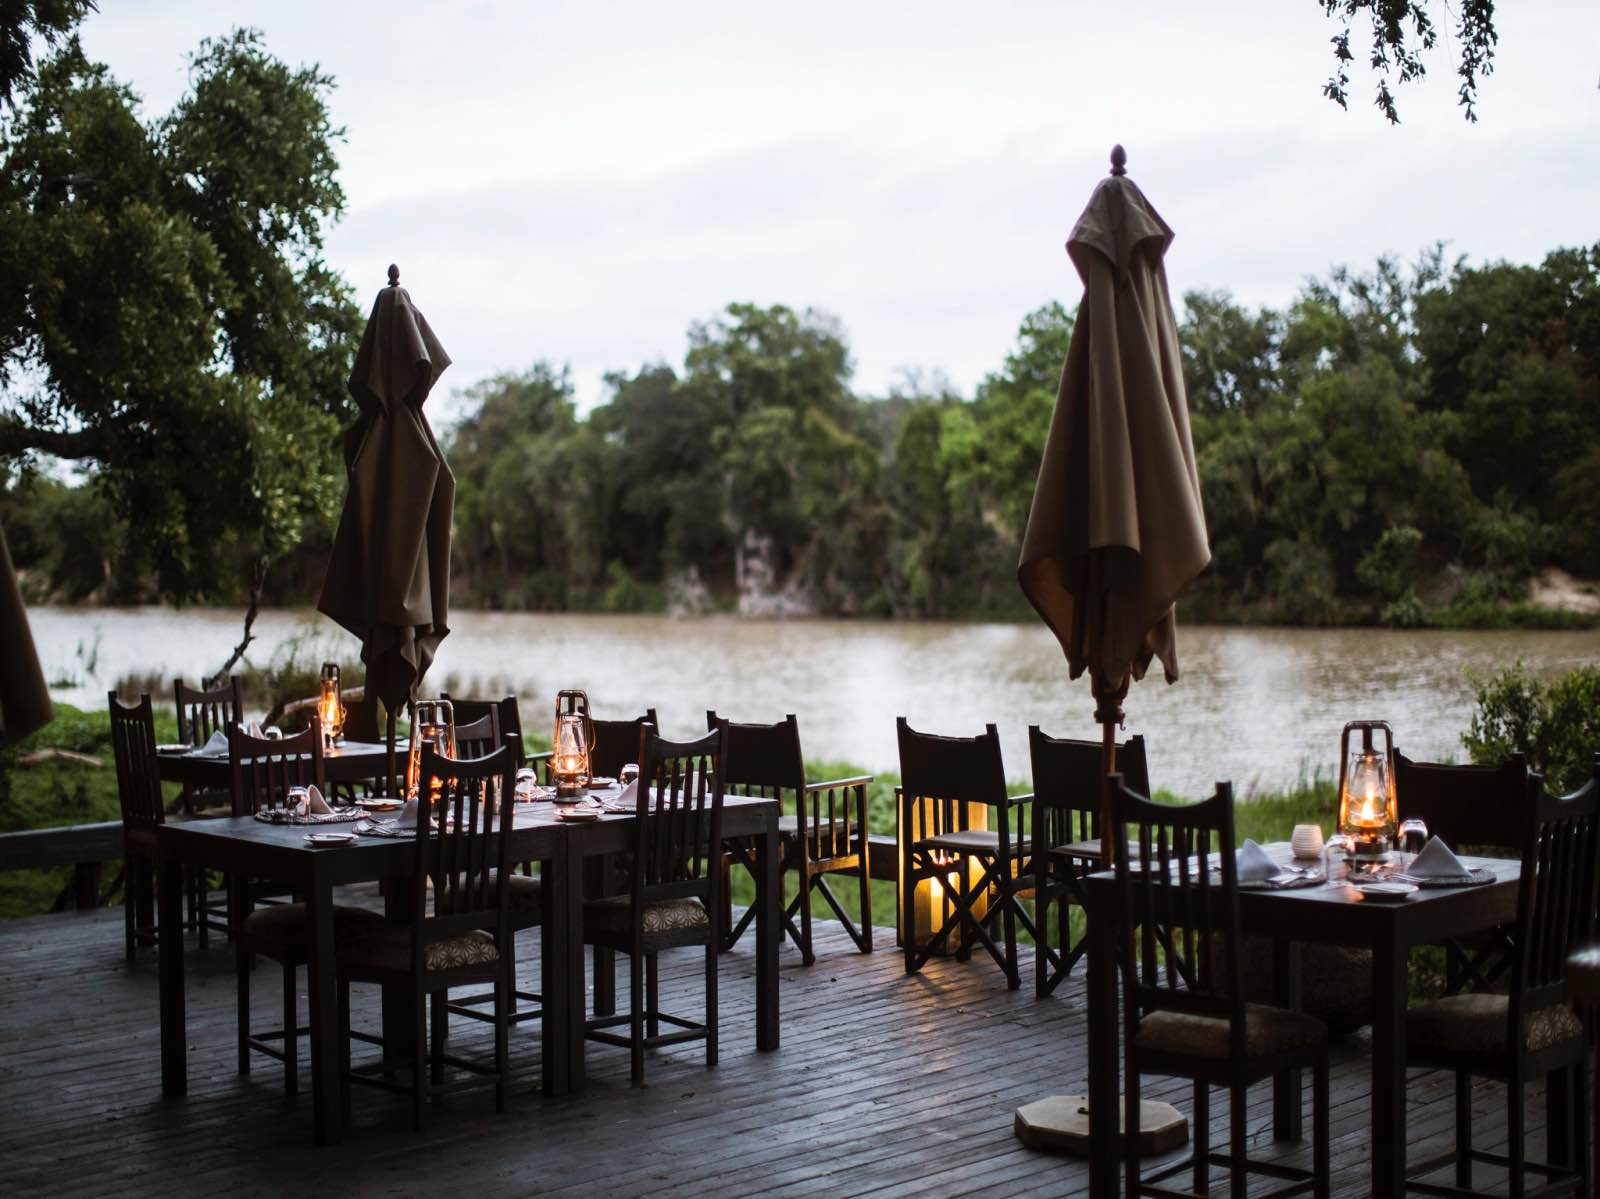 Simbavati River Lodge dining deck overlooking the Nhlaralumi River in flood during summer